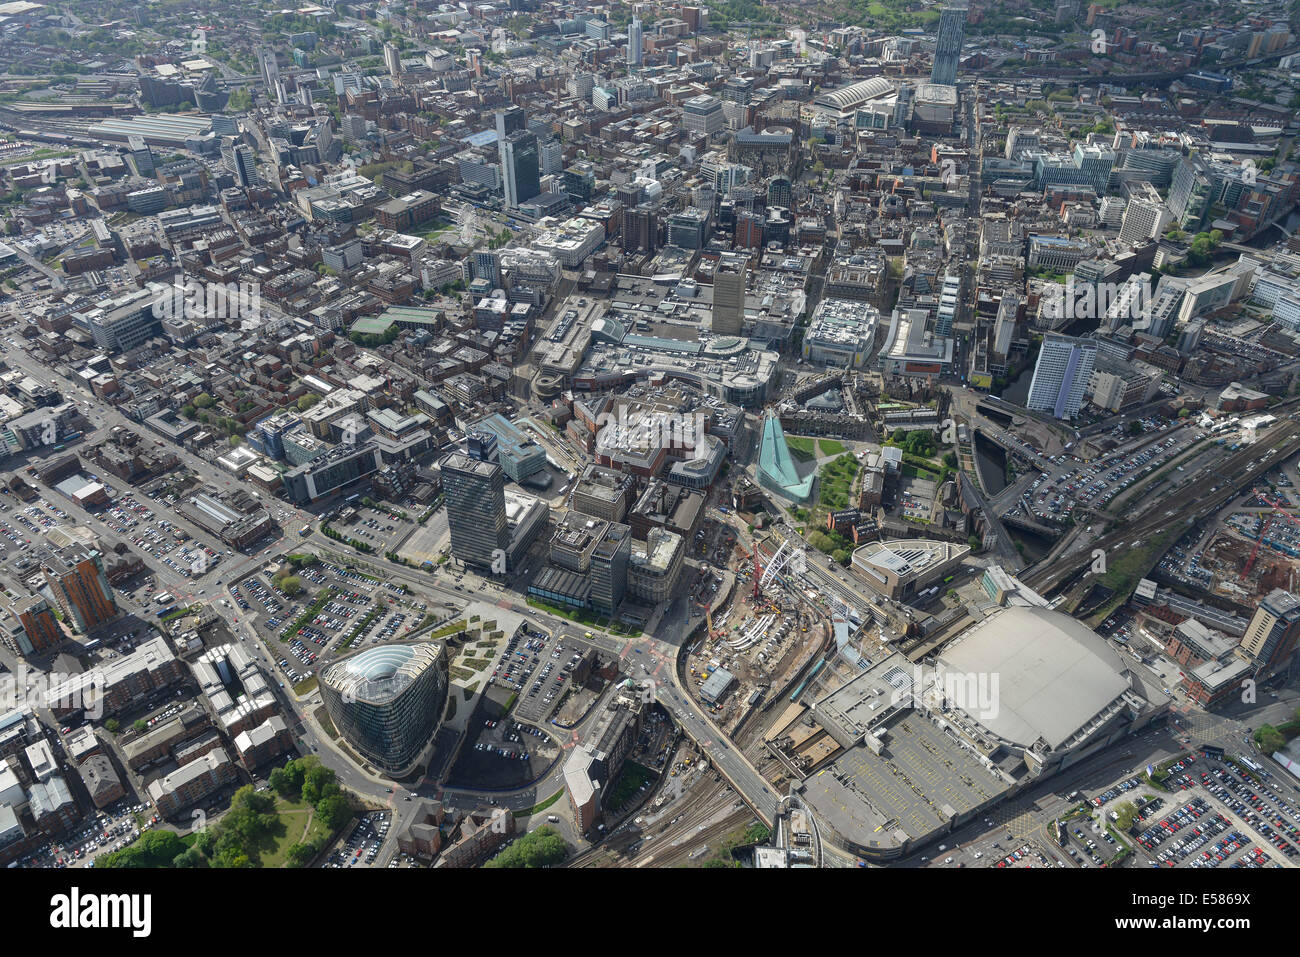 An aerial view of Manchester City Centre - Stock Image